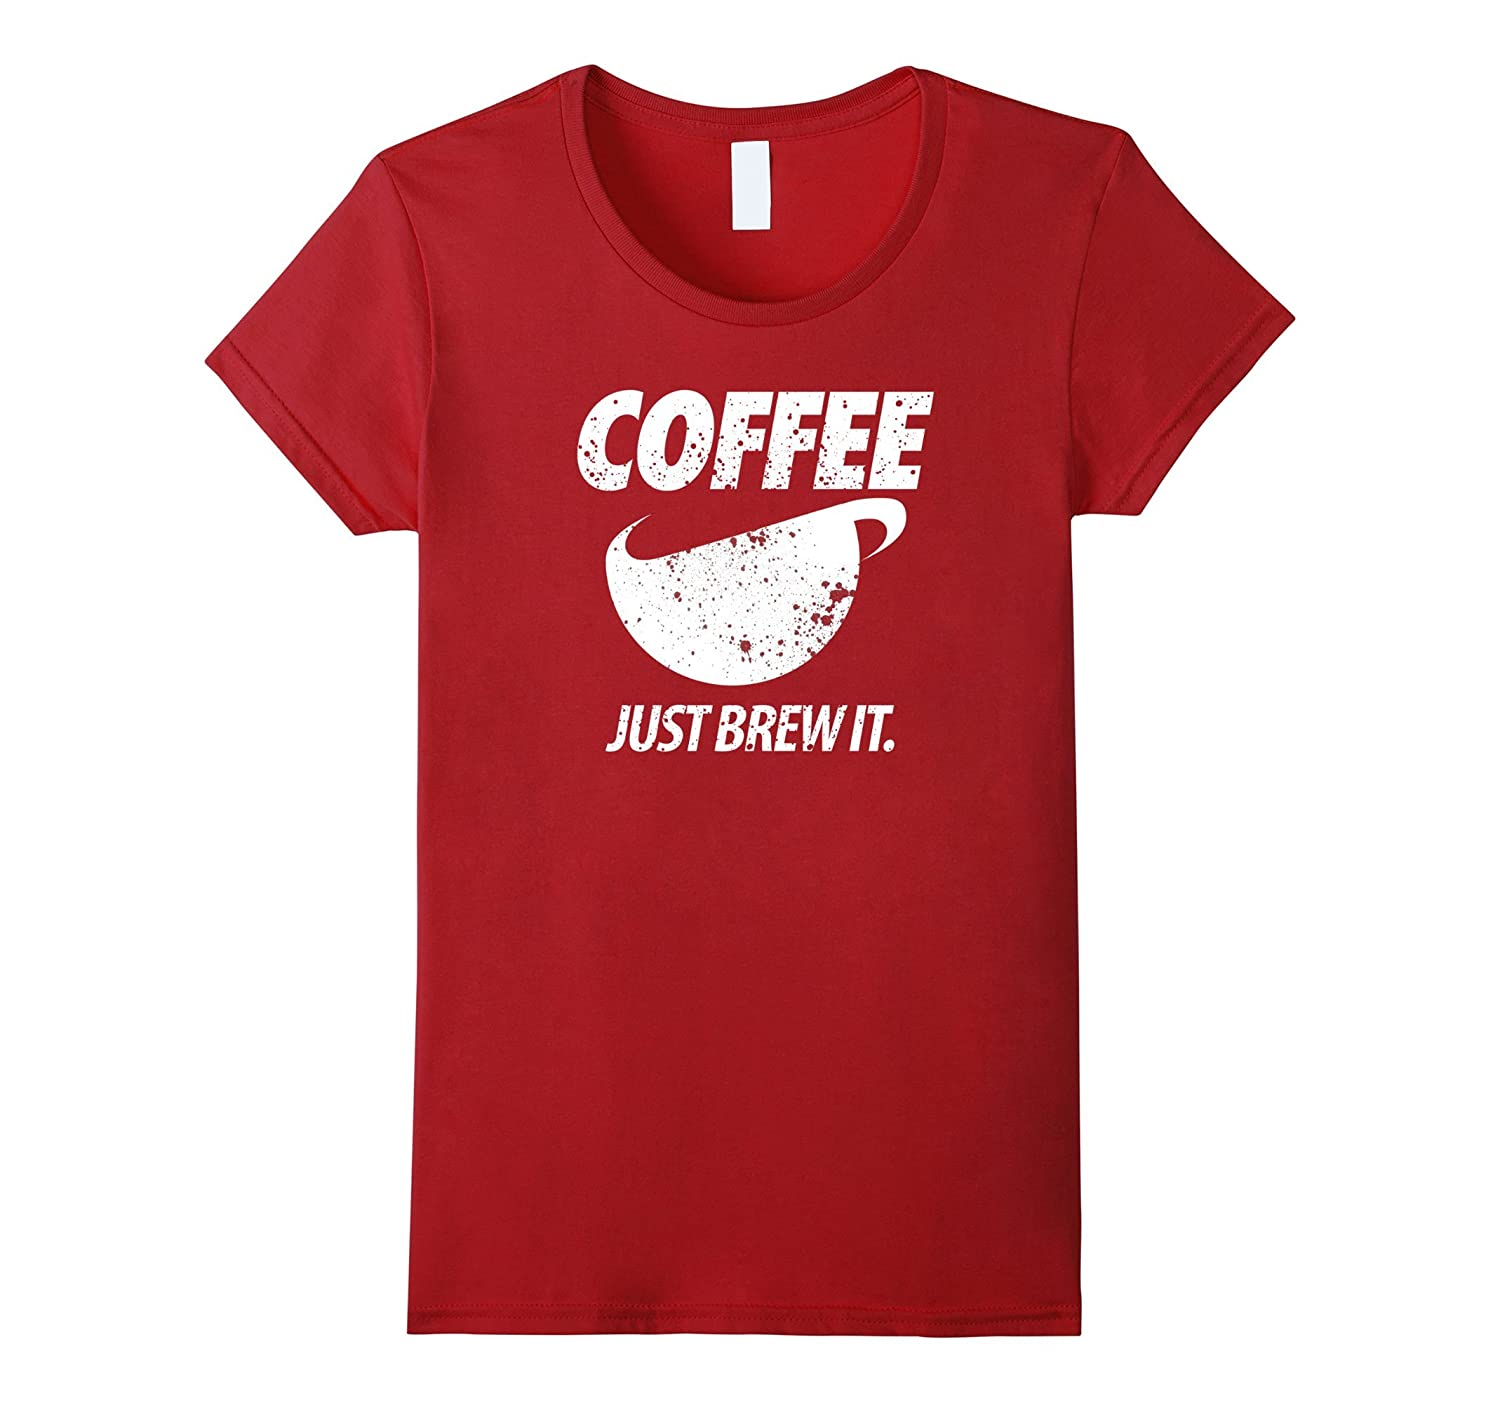 Coffee Shirts – Coffee Just Brew It Funny Parody Shirt